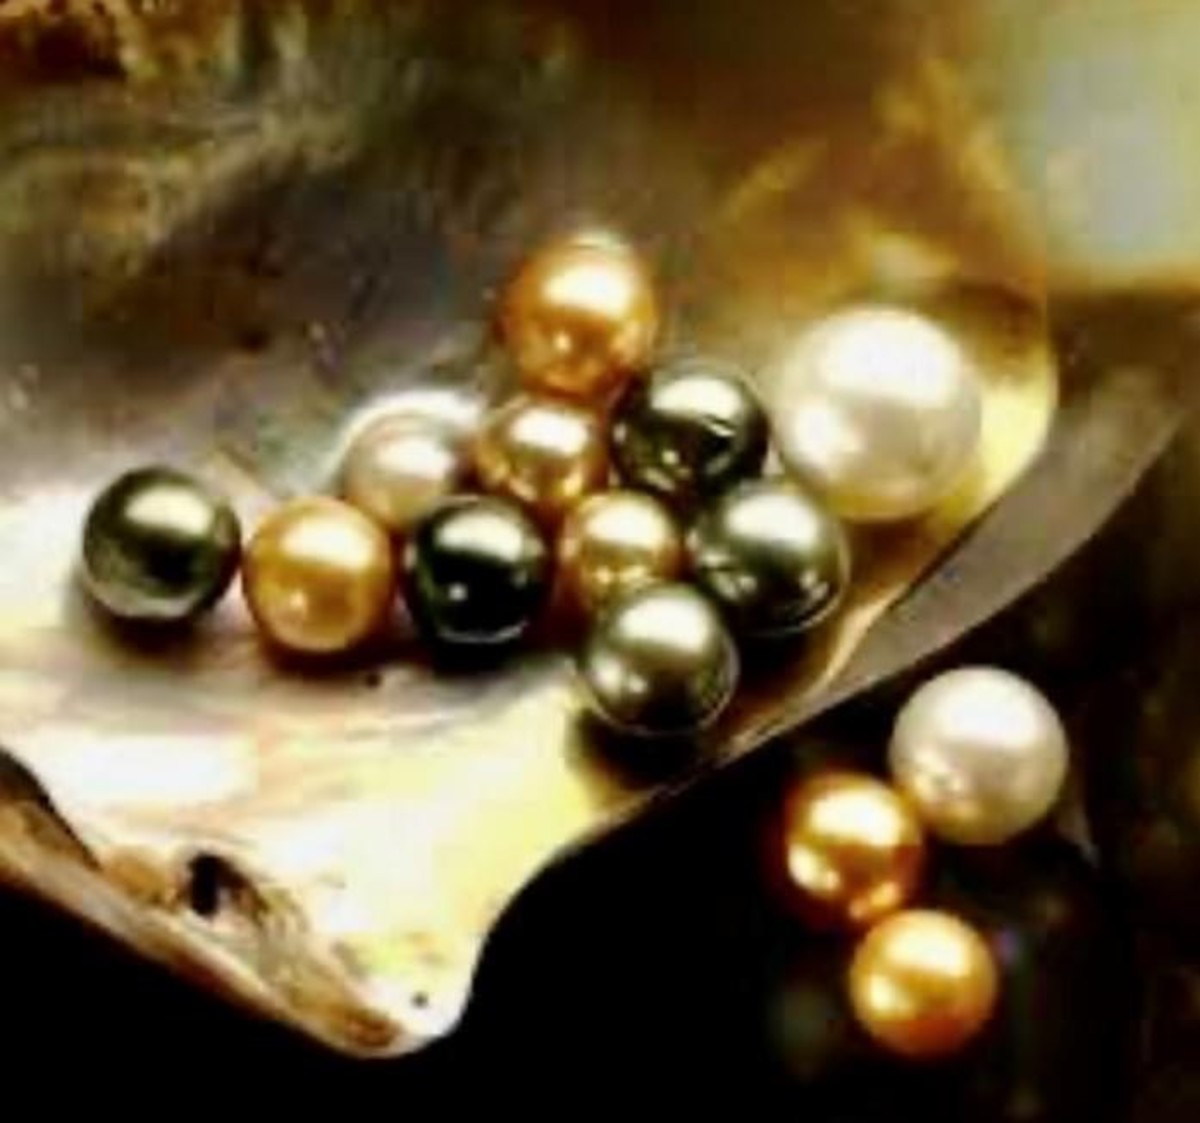 Pigs, Pearls, the Prince of Darkness and the Sacred Fire of Faith